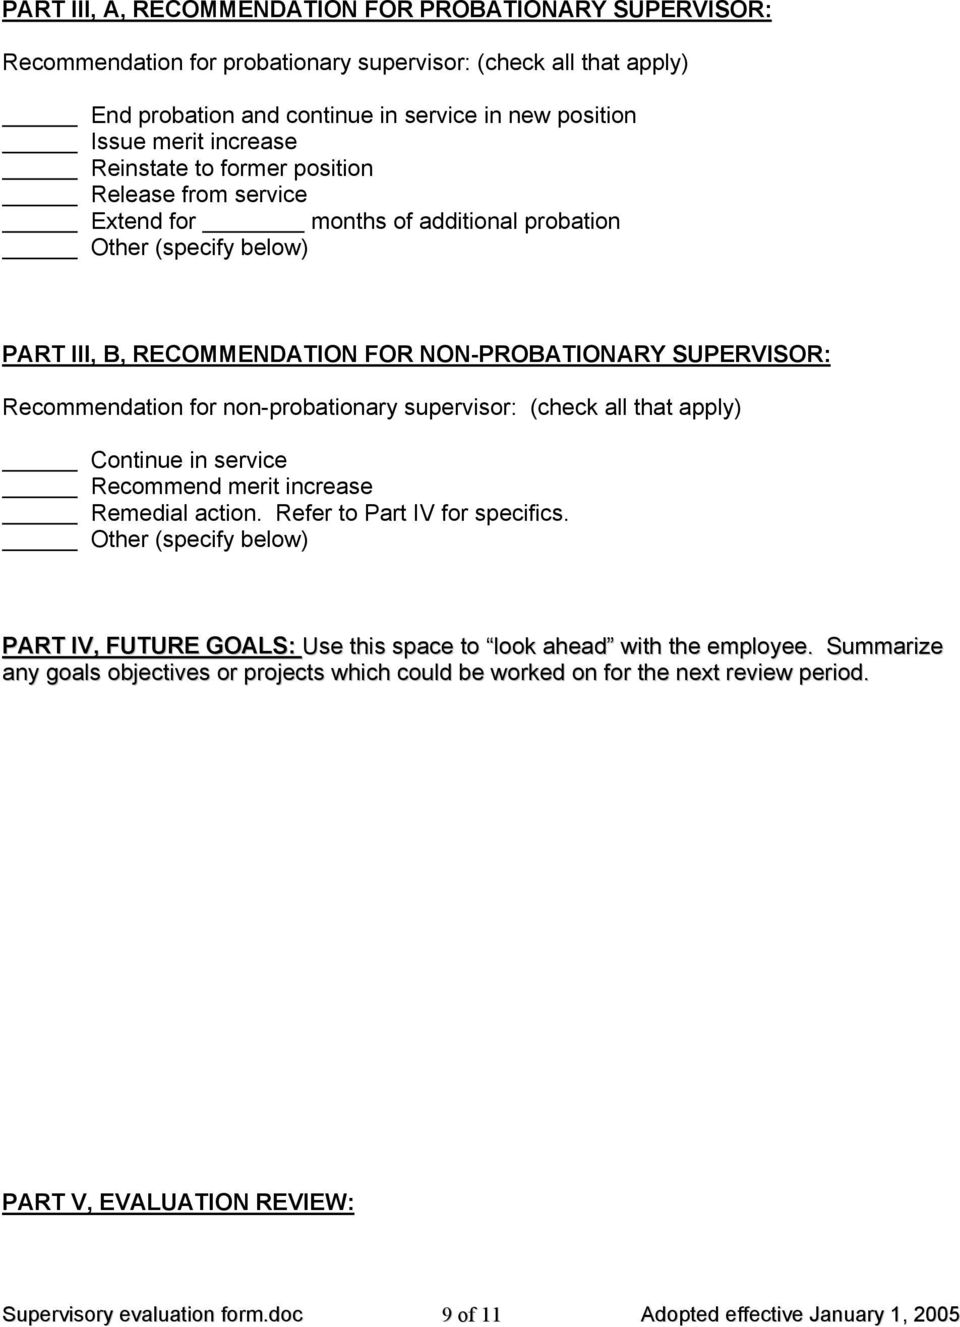 non-probationary supervisor: (check all that apply) Continue in service Recommend merit increase Remedial action. Refer to Part IV for specifics.